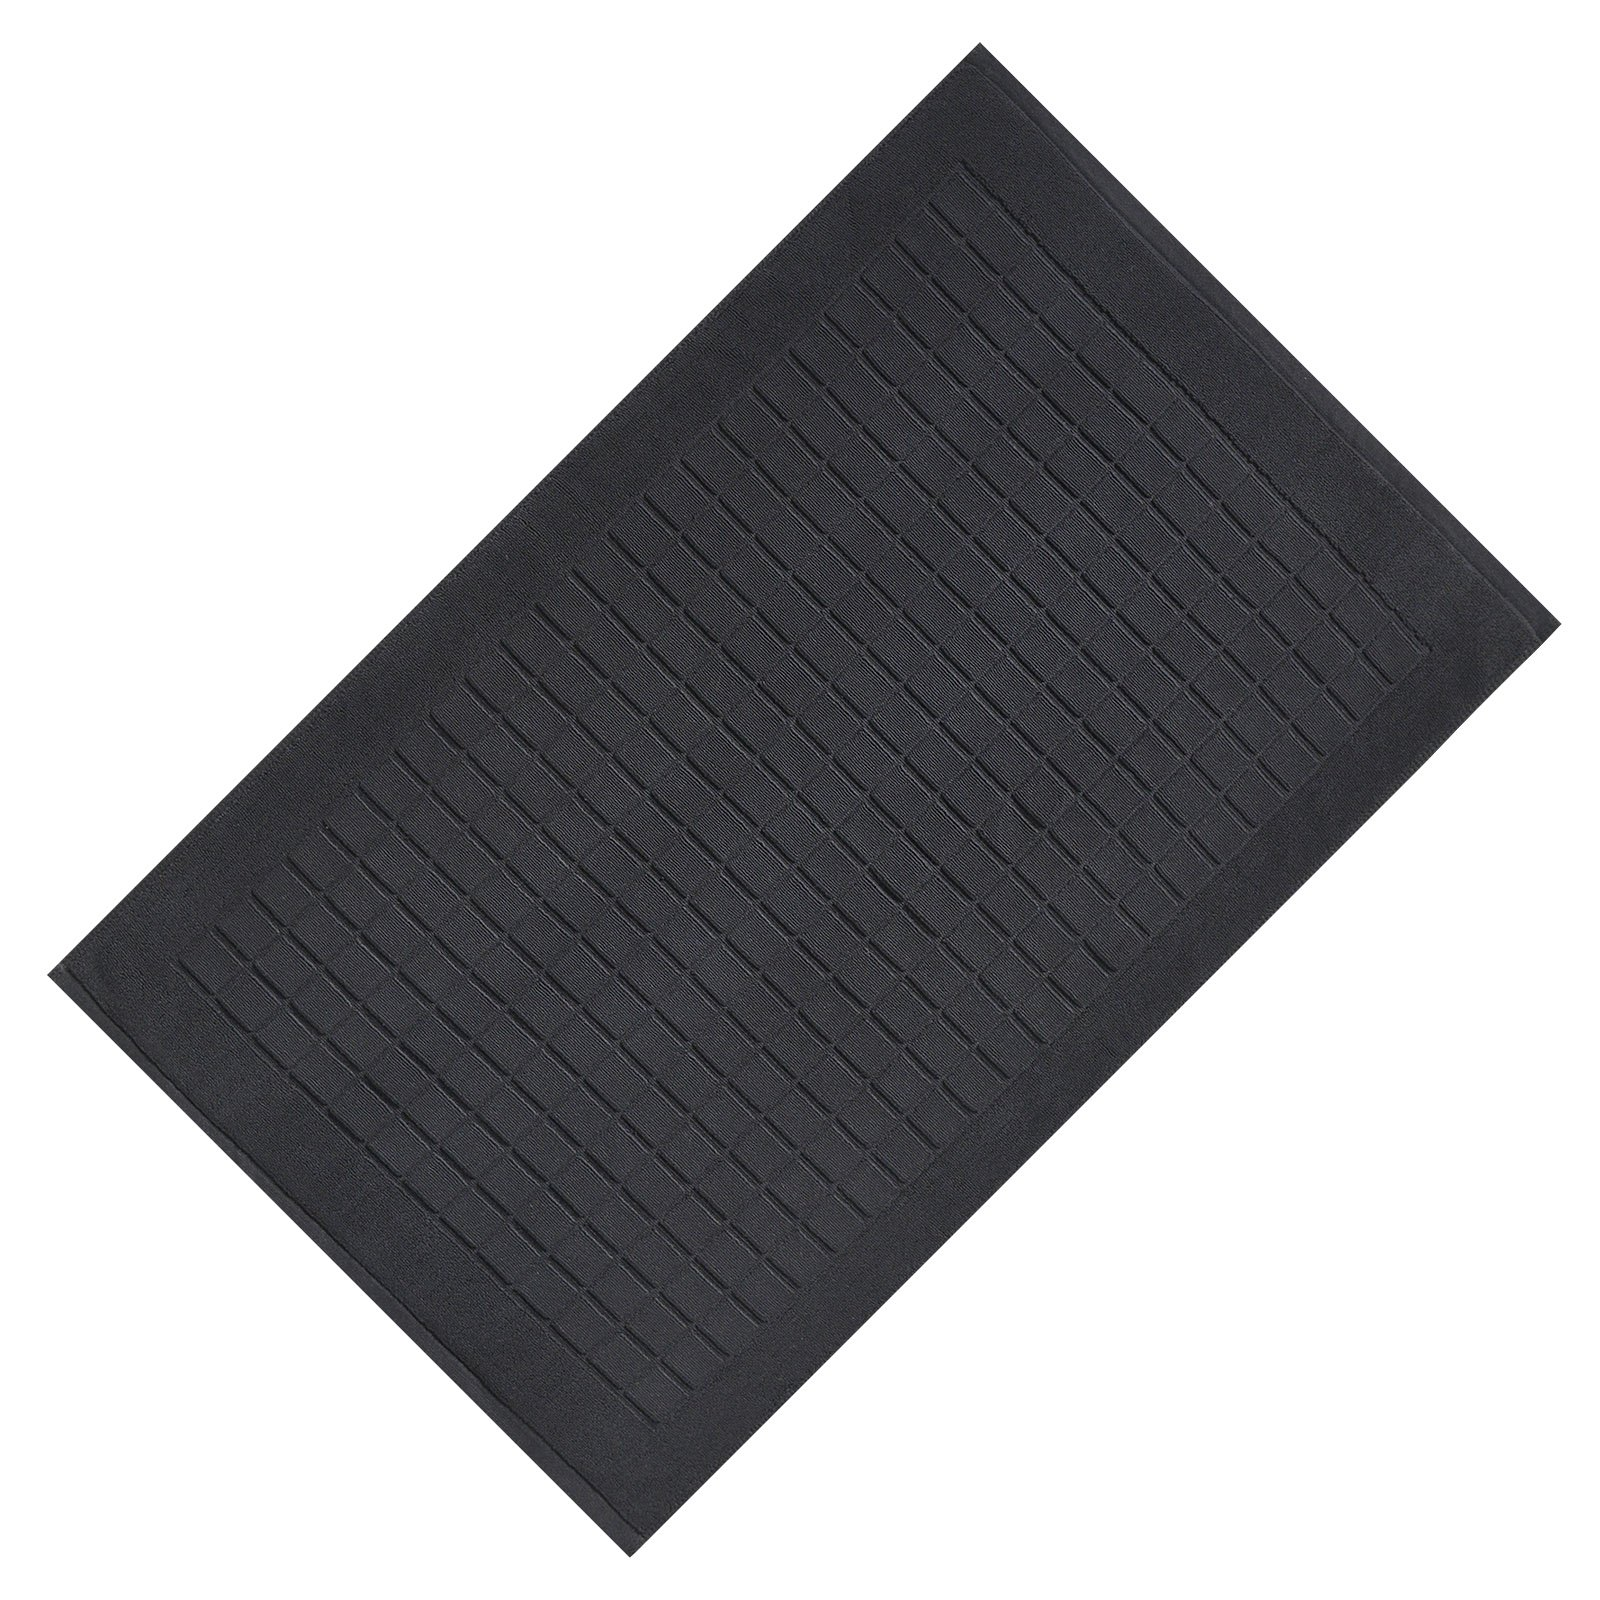 VEEYOO Luxury Hotel and Spa Quality 100% Cotton Absorbent Extra Soft Bath Mat for Shower, Black Bathroom Mat 1 Pack 20''x32'' Checkered